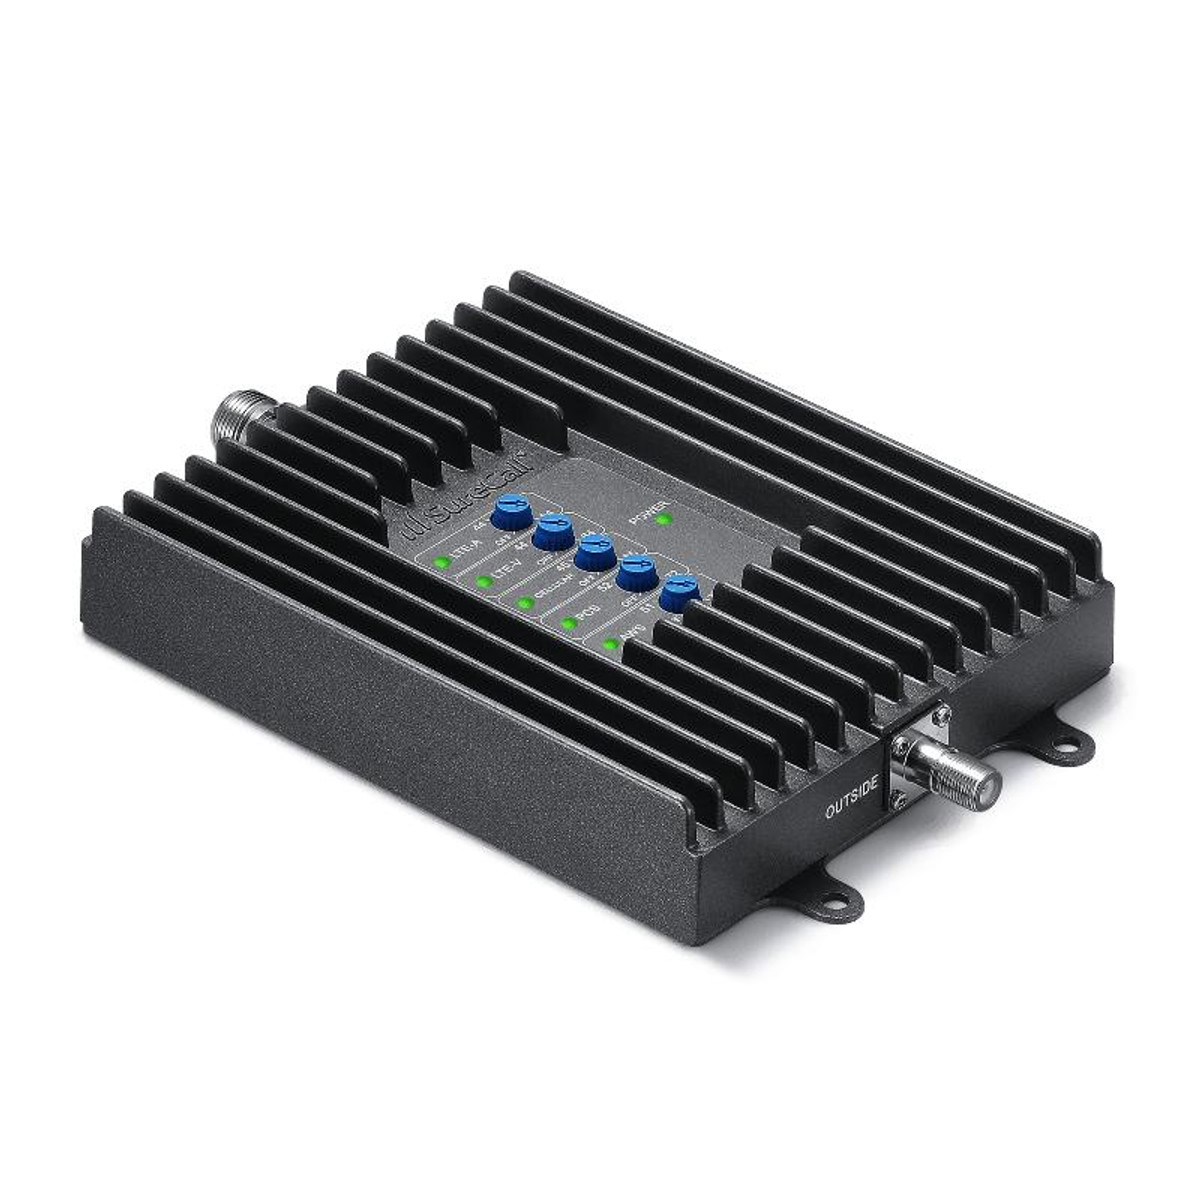 SureCall SureCall Fusion4Home Signal Booster - Up To 4K Sq Ft